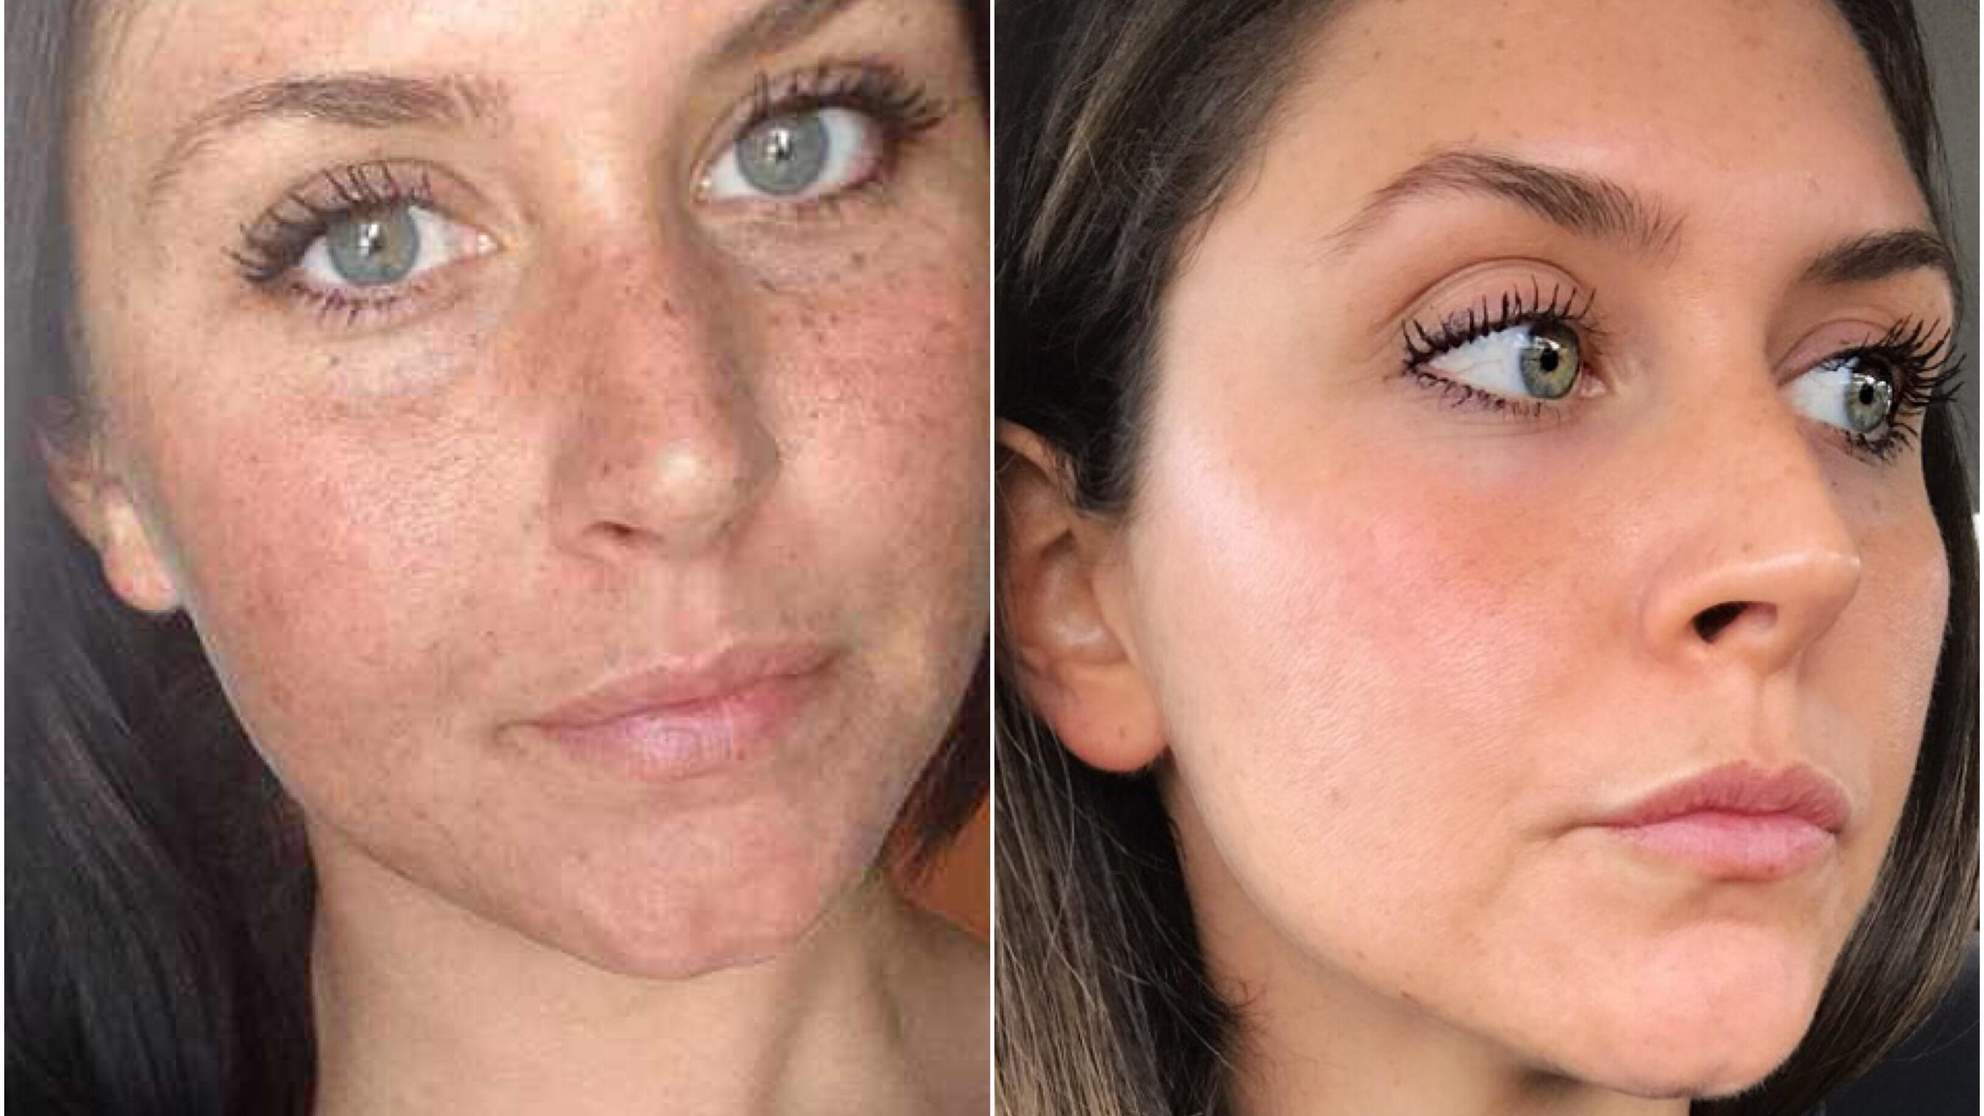 The Exact Anti-Aging Products That Helped Heal Years of Sun Damage on This Woman's Face